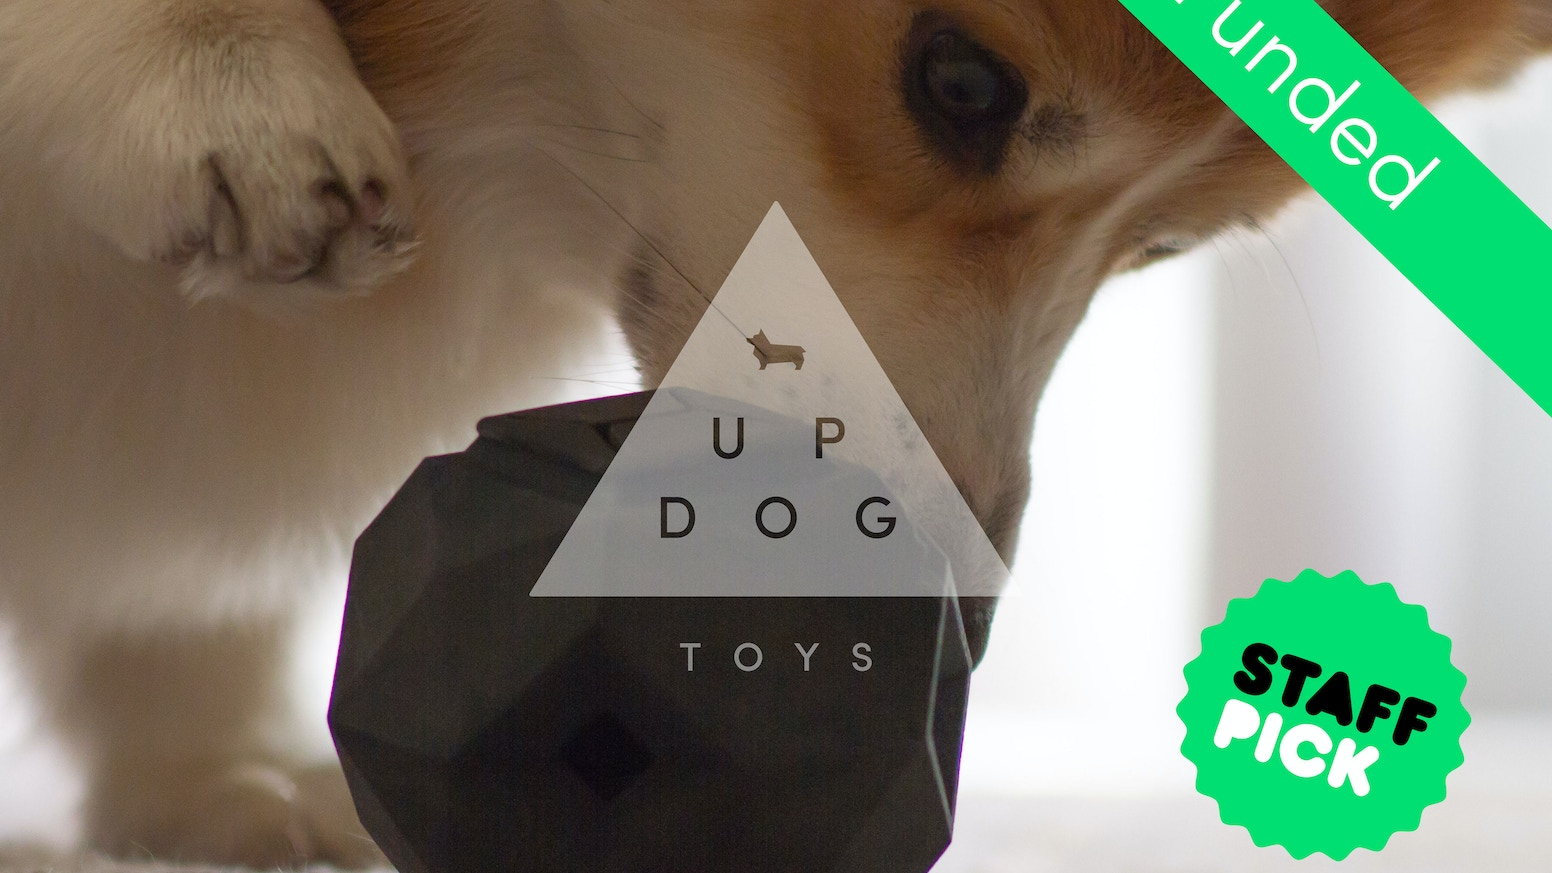 We believe dog toys can be functional and beautiful without compromising anything. Our toy is fun, beautiful and expandable.